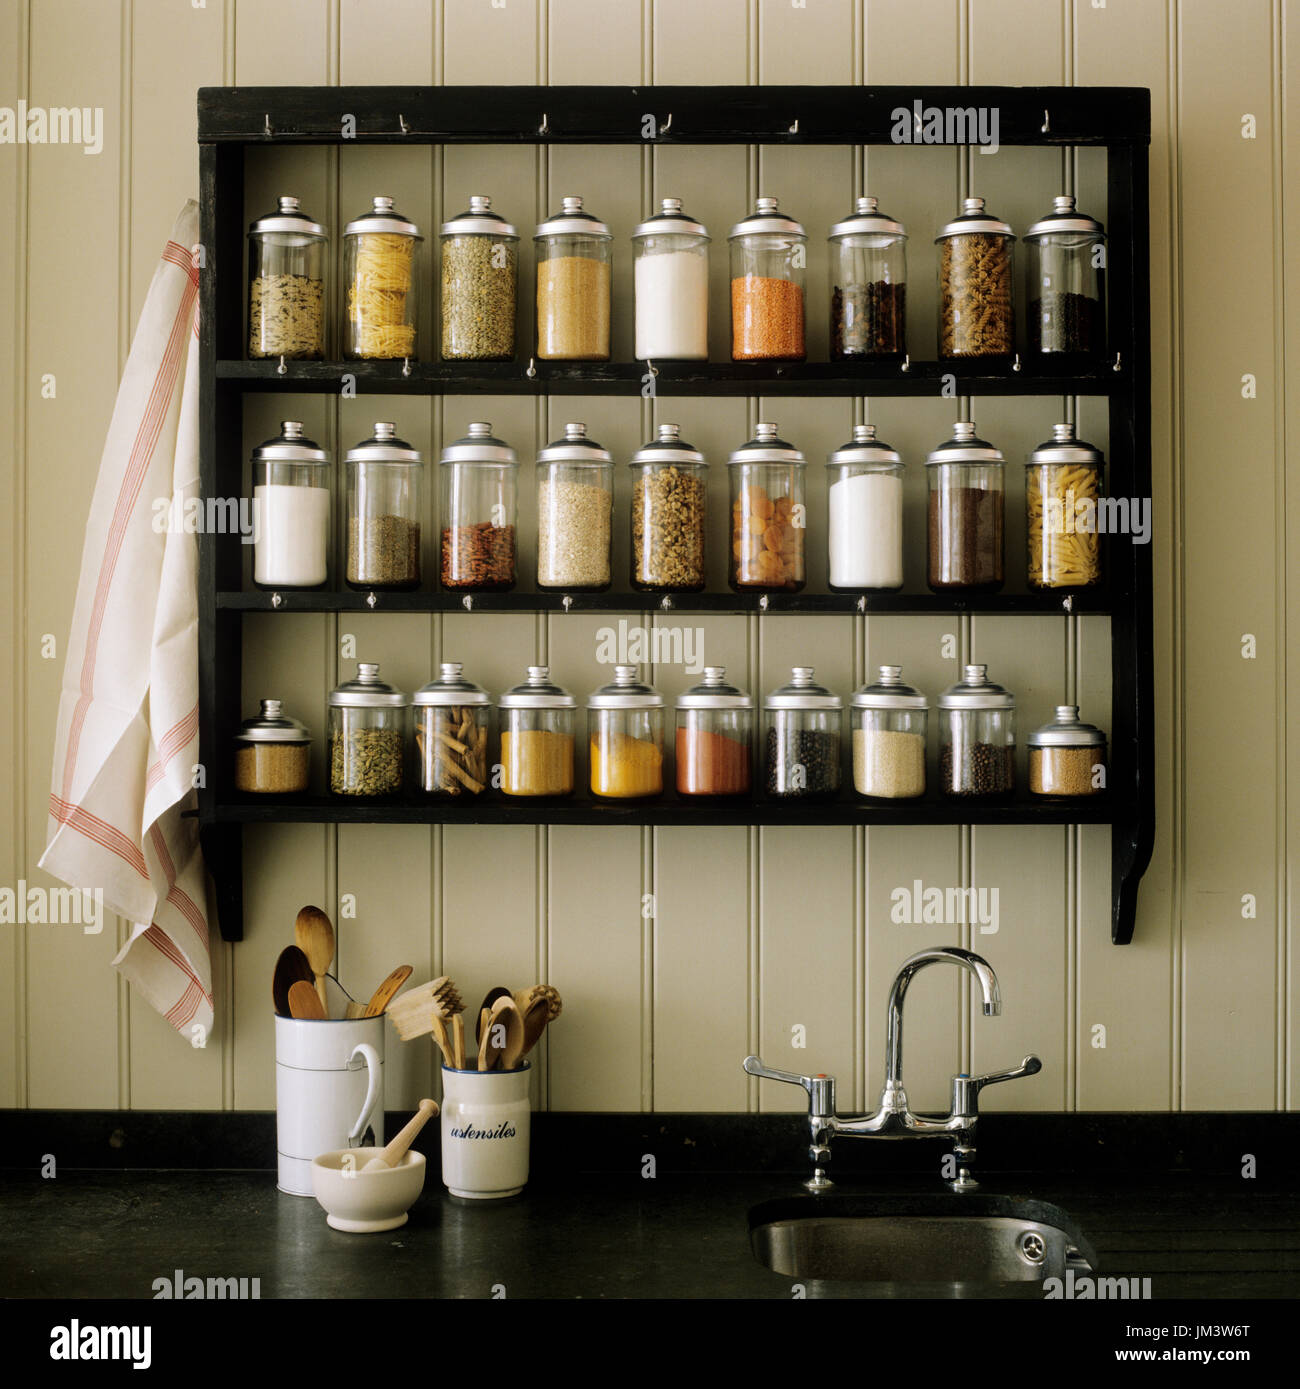 Spice rack above bench stock image